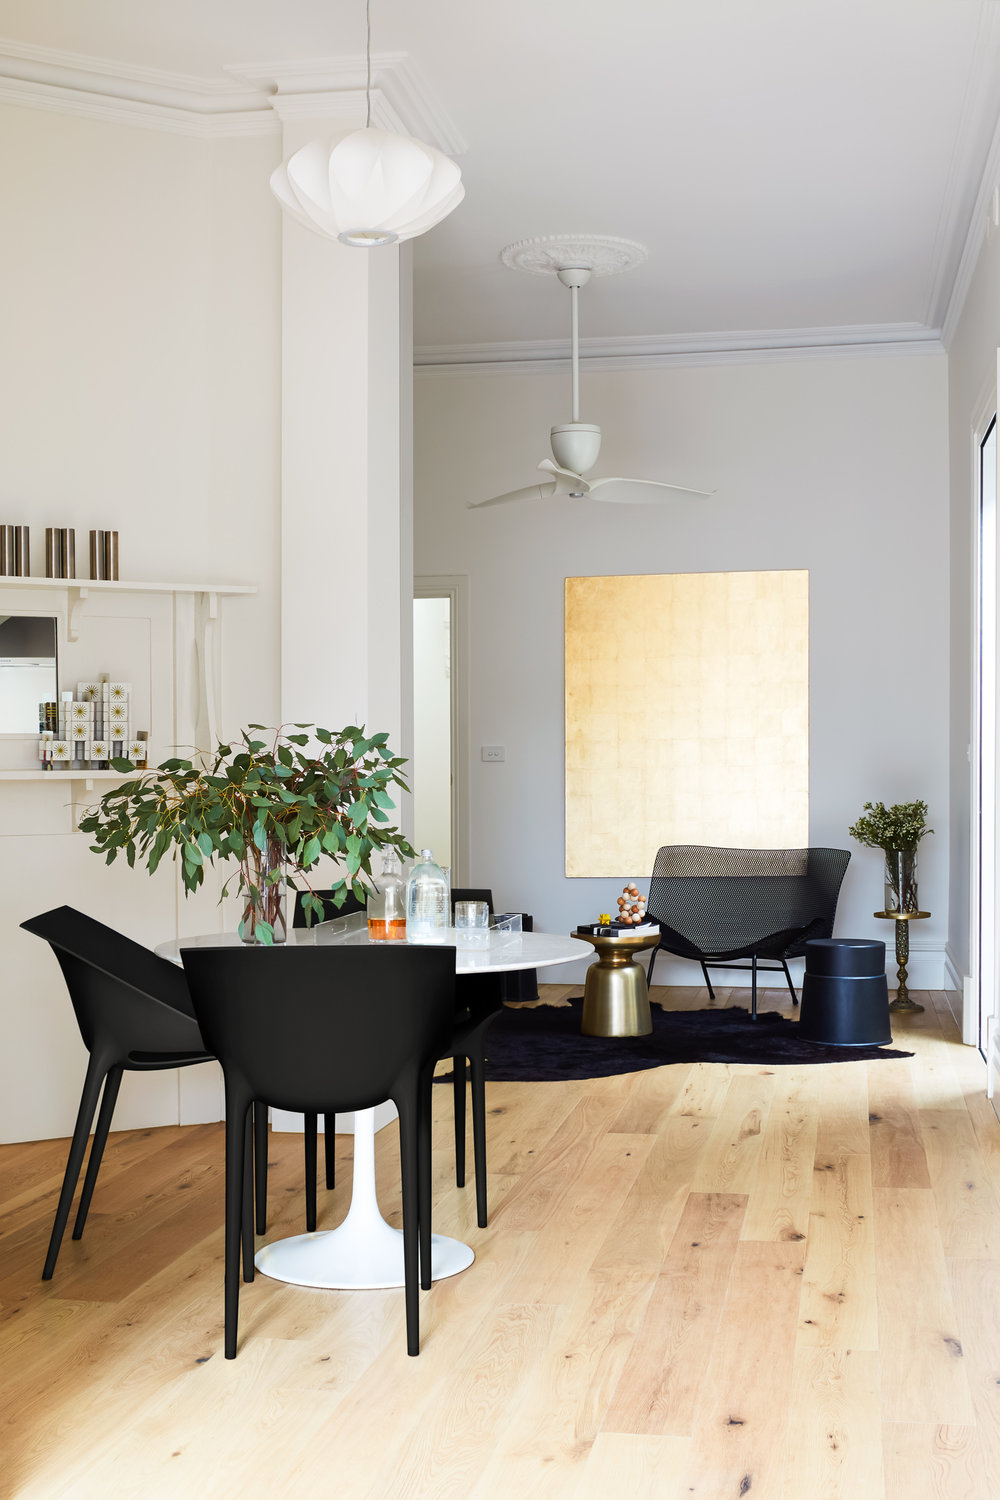 Walls, Dulux paint; colour: natural white.   Royal Oak floors South Yarra; architect collection, American oak aged smoked.   Grillage metal arm chair in black small by Ligne-Roset; designer: Francois Azambourg .  Dining chair: Dr. YES by Kartell; designers: Phillippe Starck with Eugeni Quitllet.